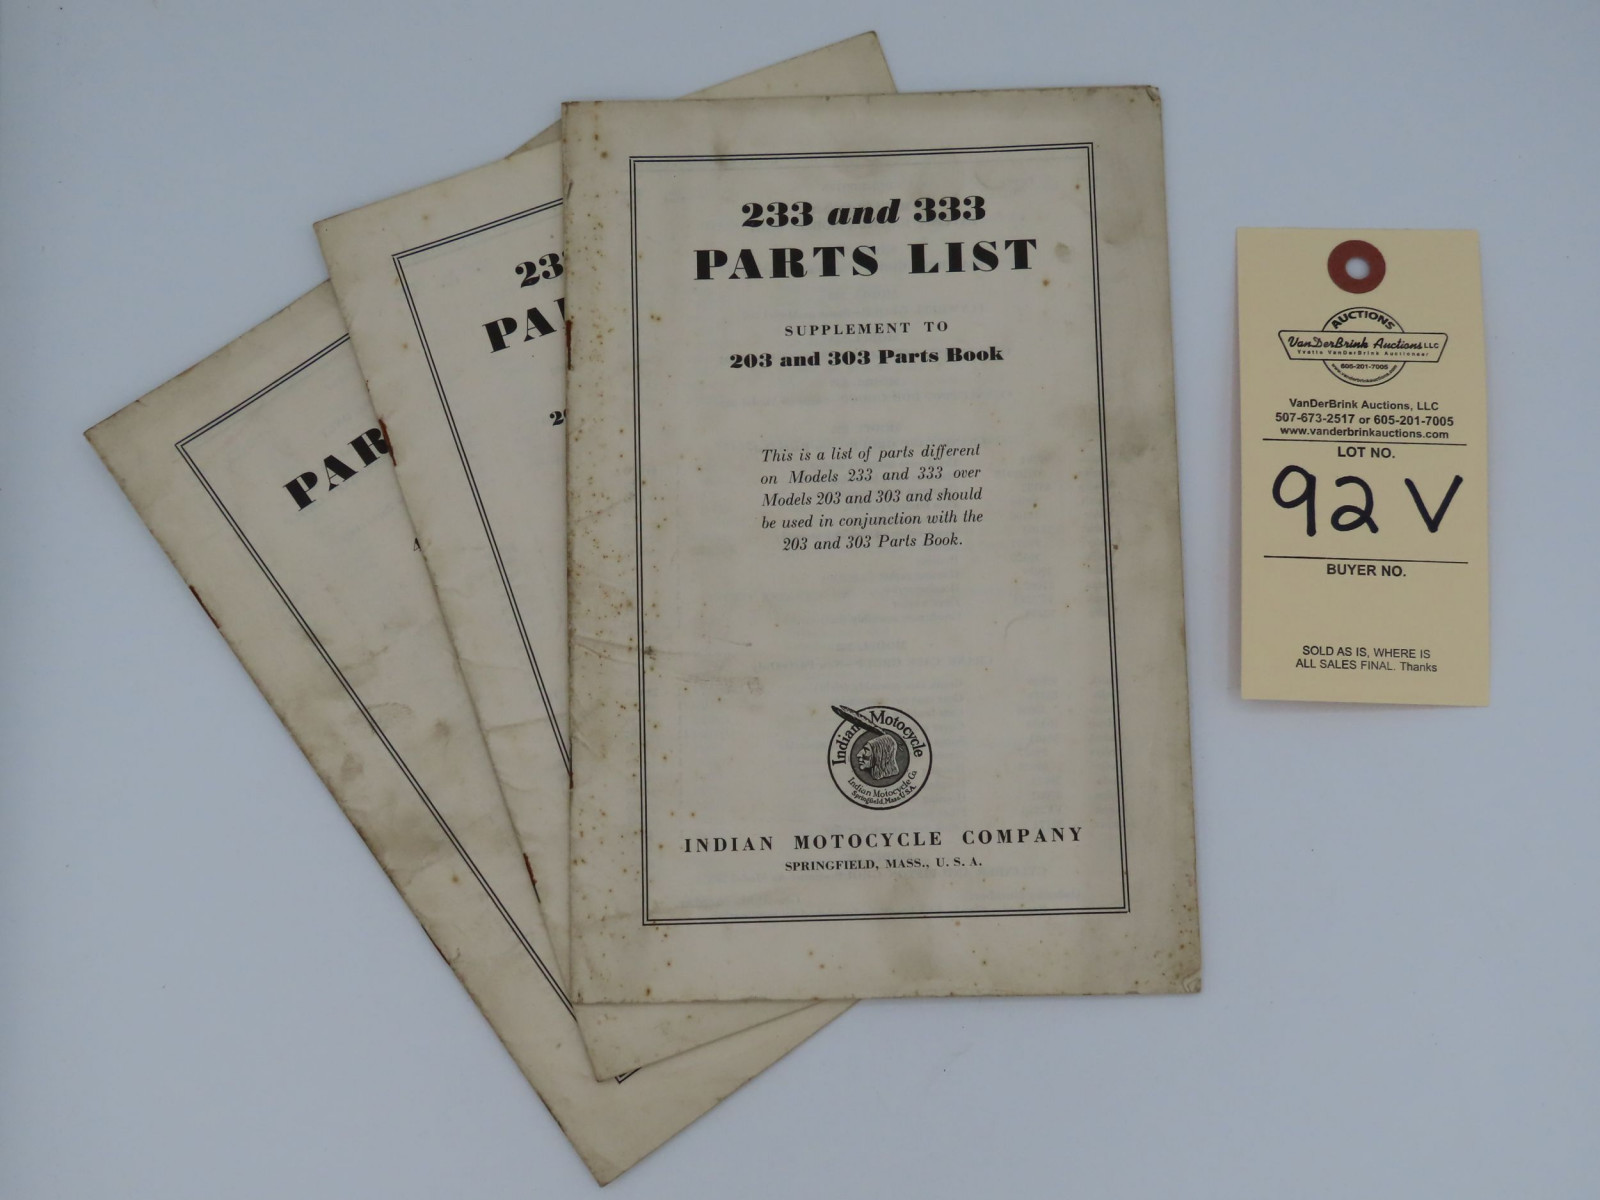 Indian Motorcycle 233 and 333 Parts List book.  Supplement to 203 and 303 Parts Book - Image 1